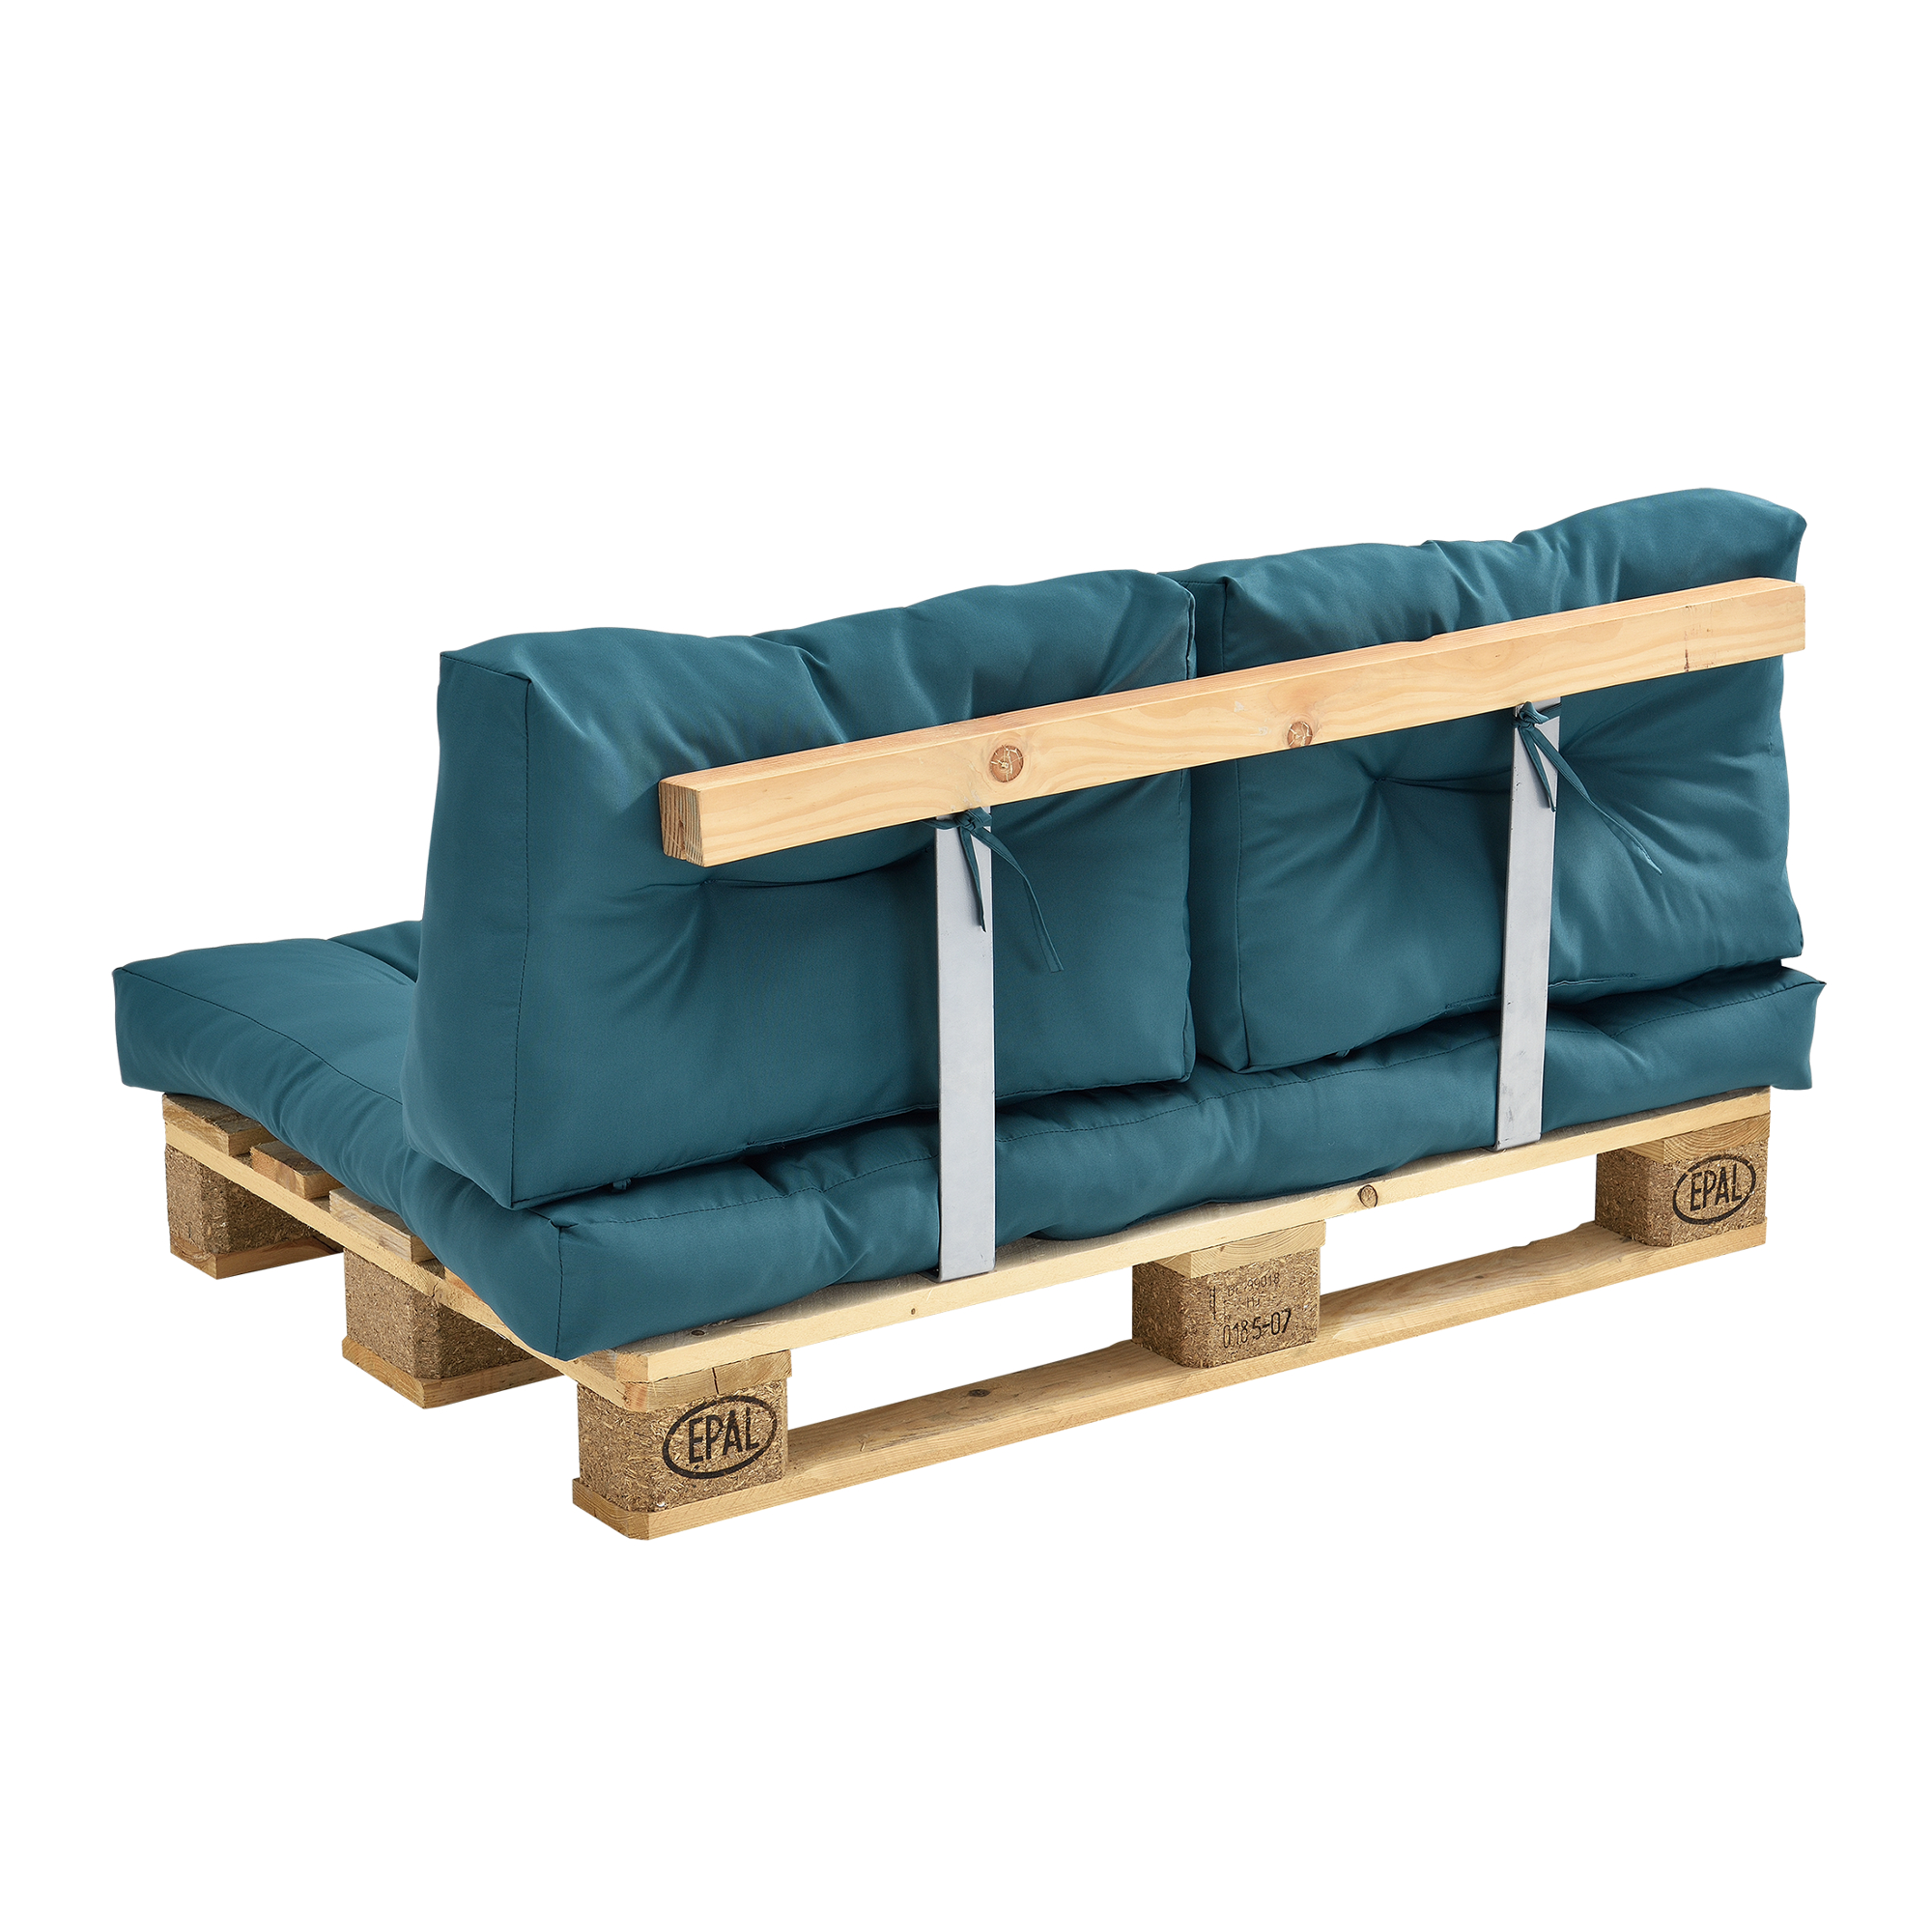 pallet cushions in outdoor sofa padding seat ebay. Black Bedroom Furniture Sets. Home Design Ideas